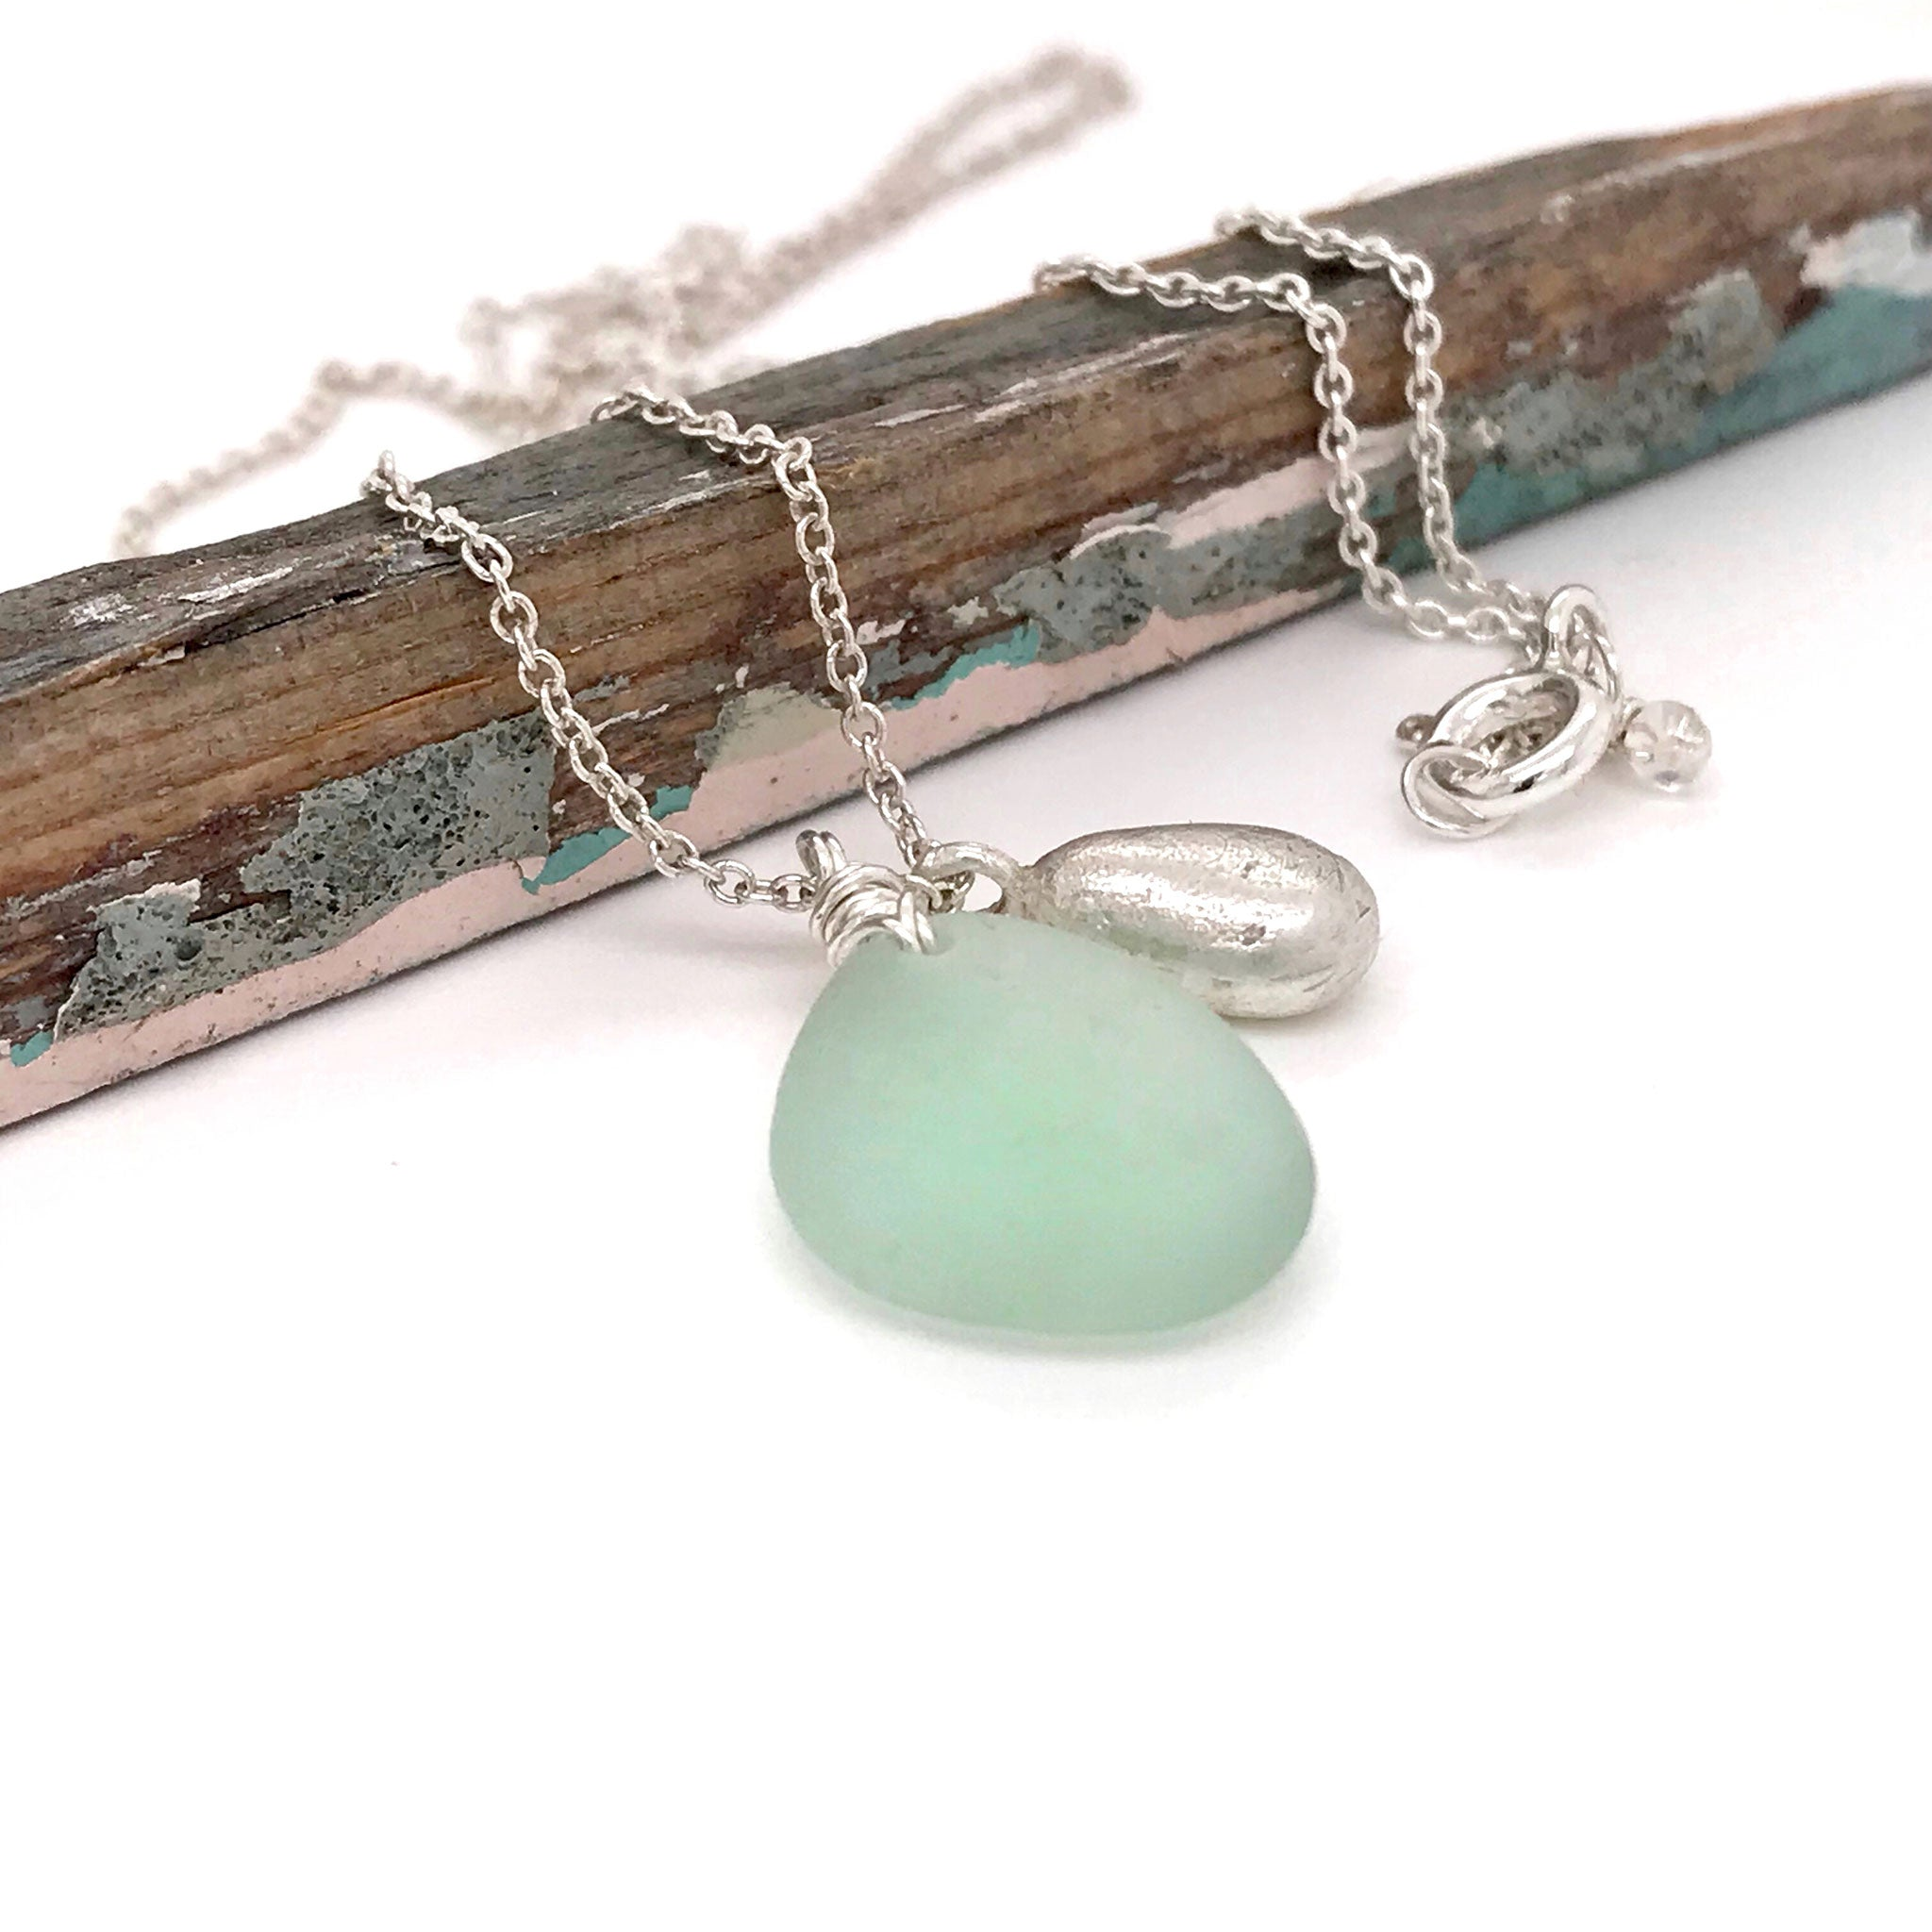 Pale Green Seaglass Necklace with Solid Silver Teardrop Charm - kriket-broadhurst